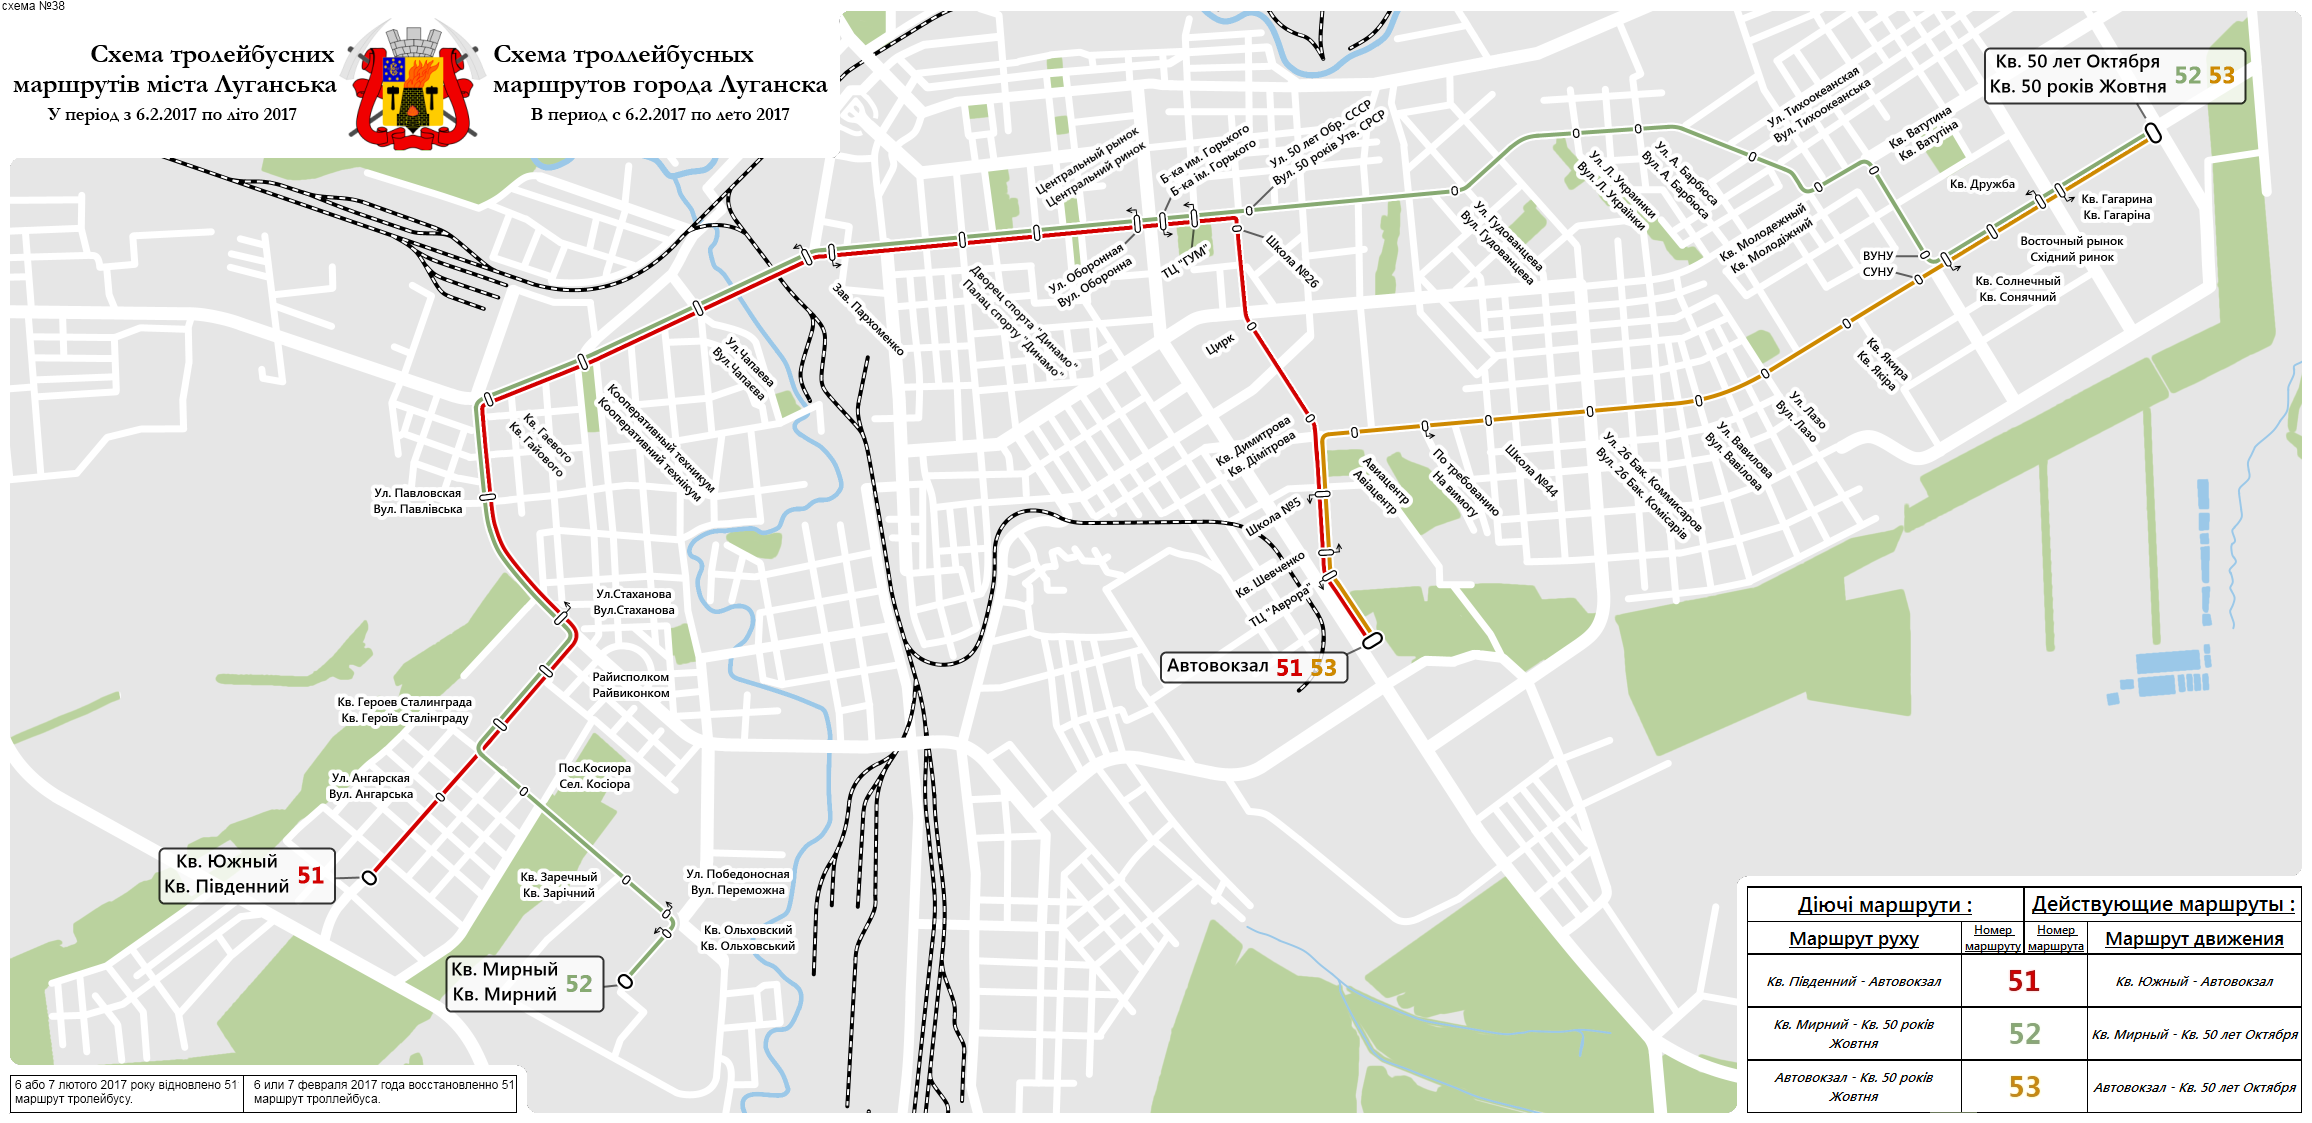 Lugansk — Historical schemes Lugansk city trolleybus routes